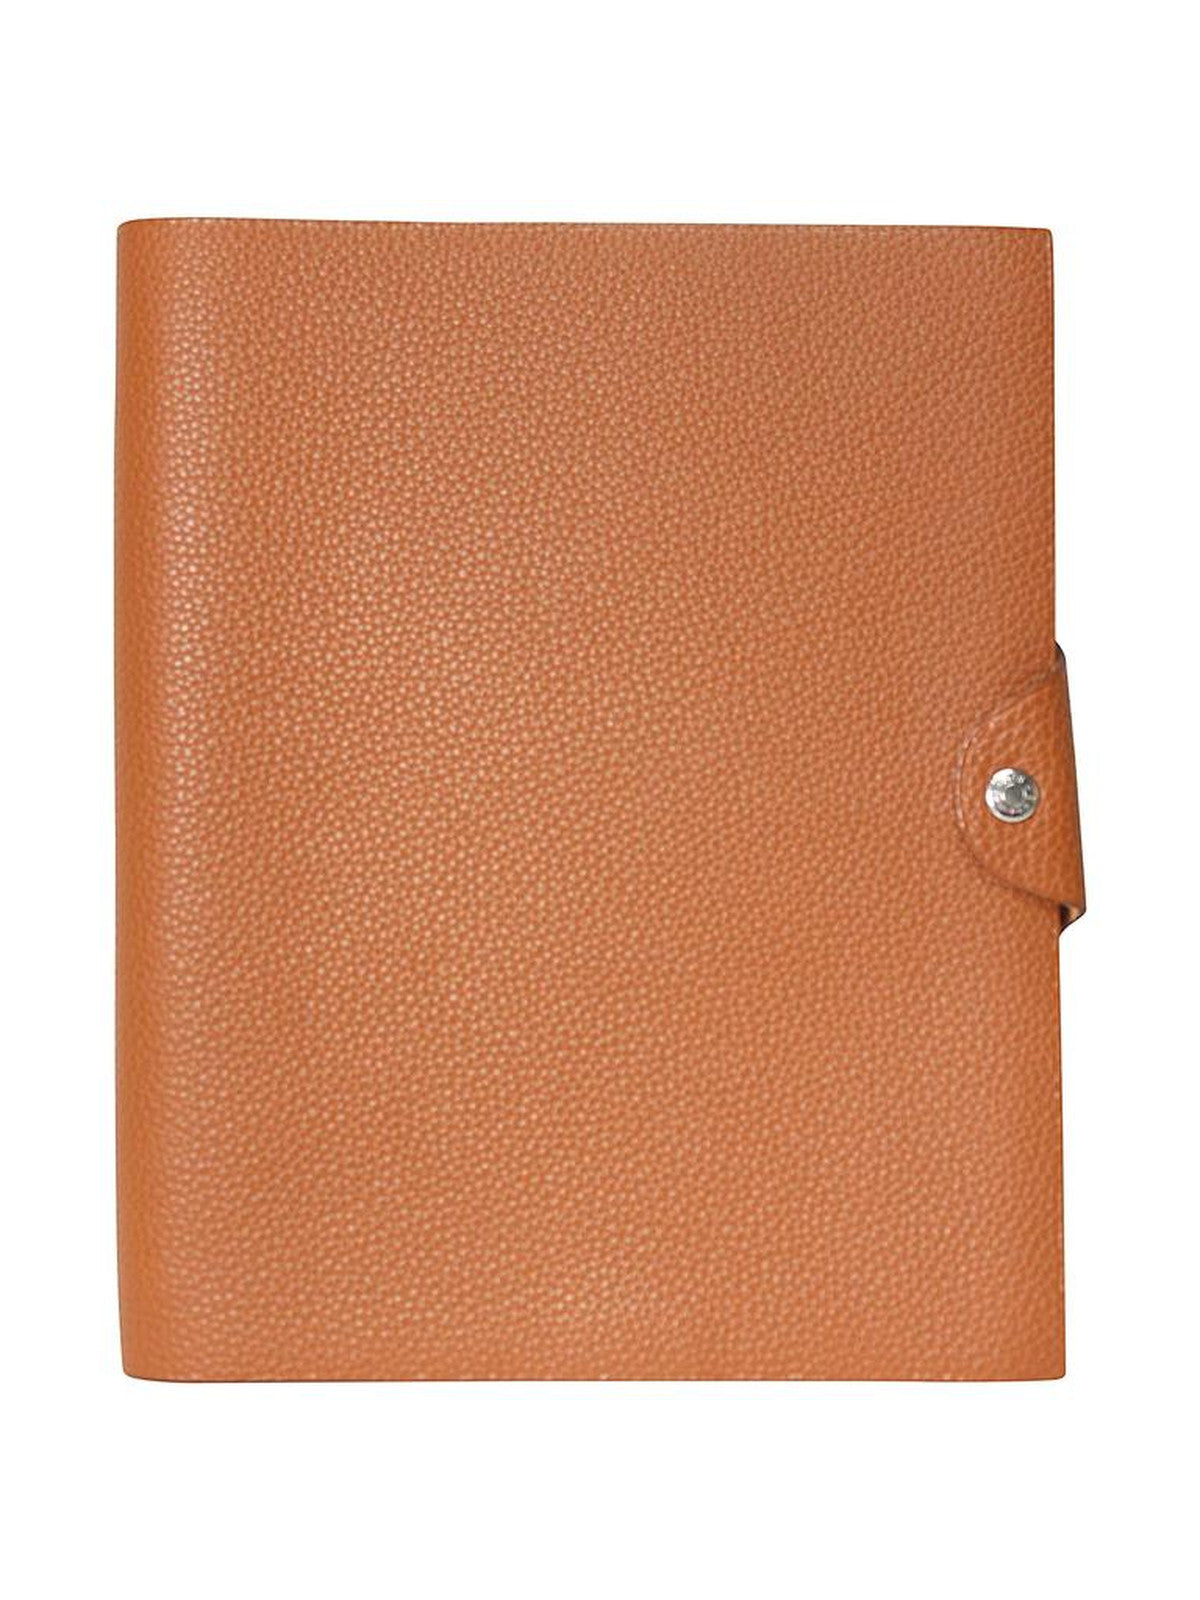 Hermès Togo Leather Notebook